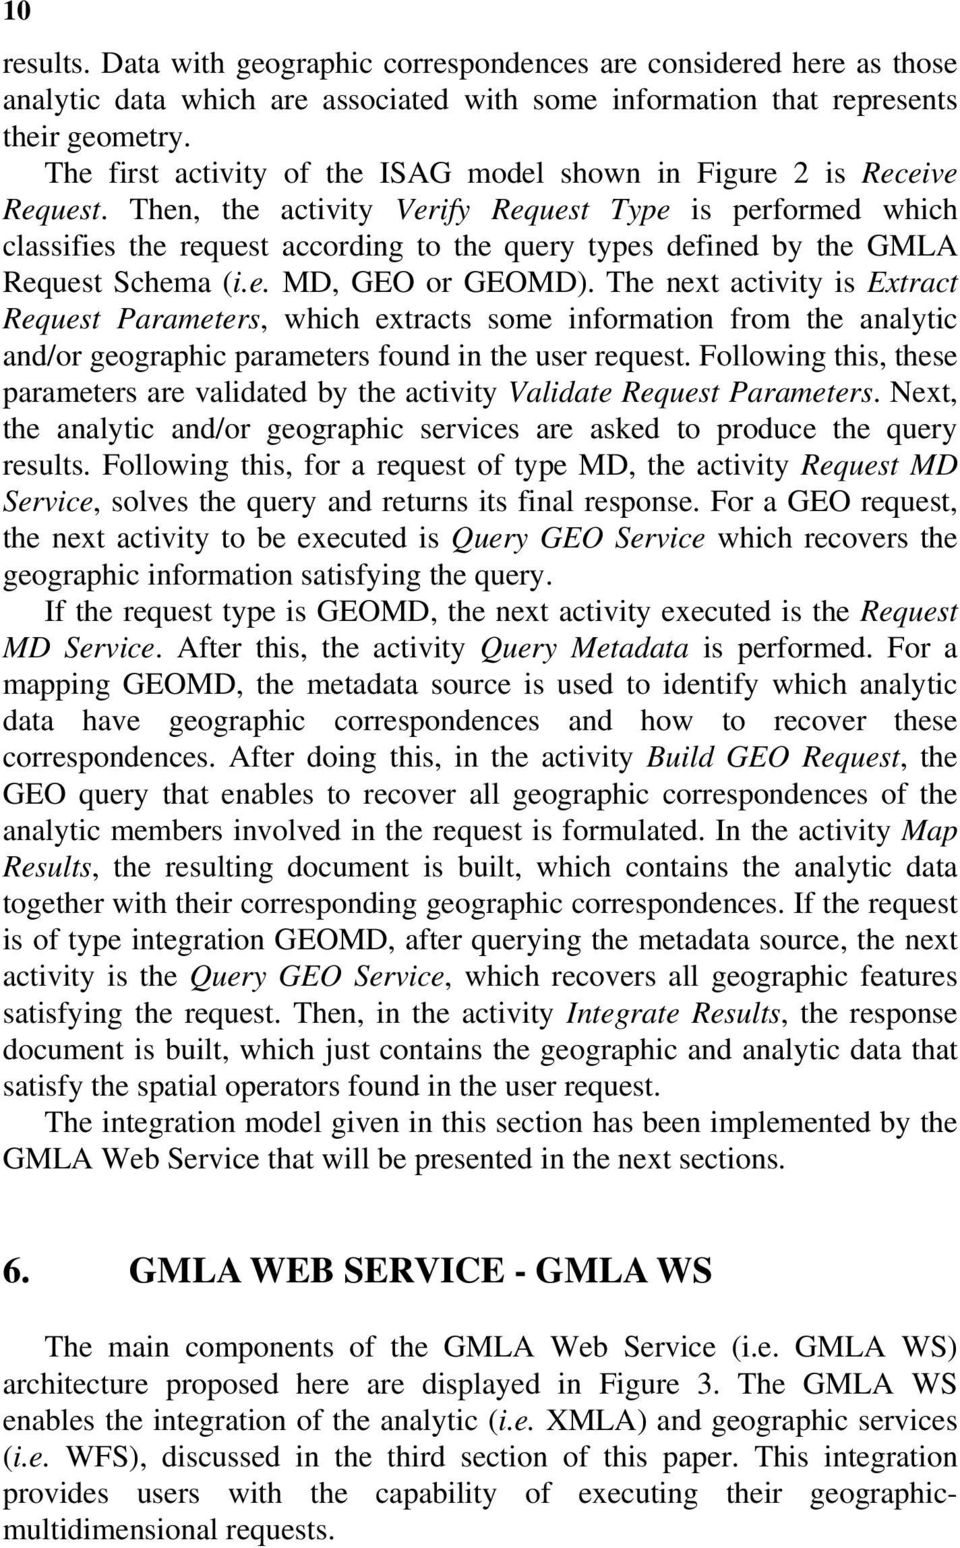 Then, the activity Verify Request Type is performed which classifies the request according to the query types defined by the GMLA Request Schema (i.e. MD, GEO or GEOMD).